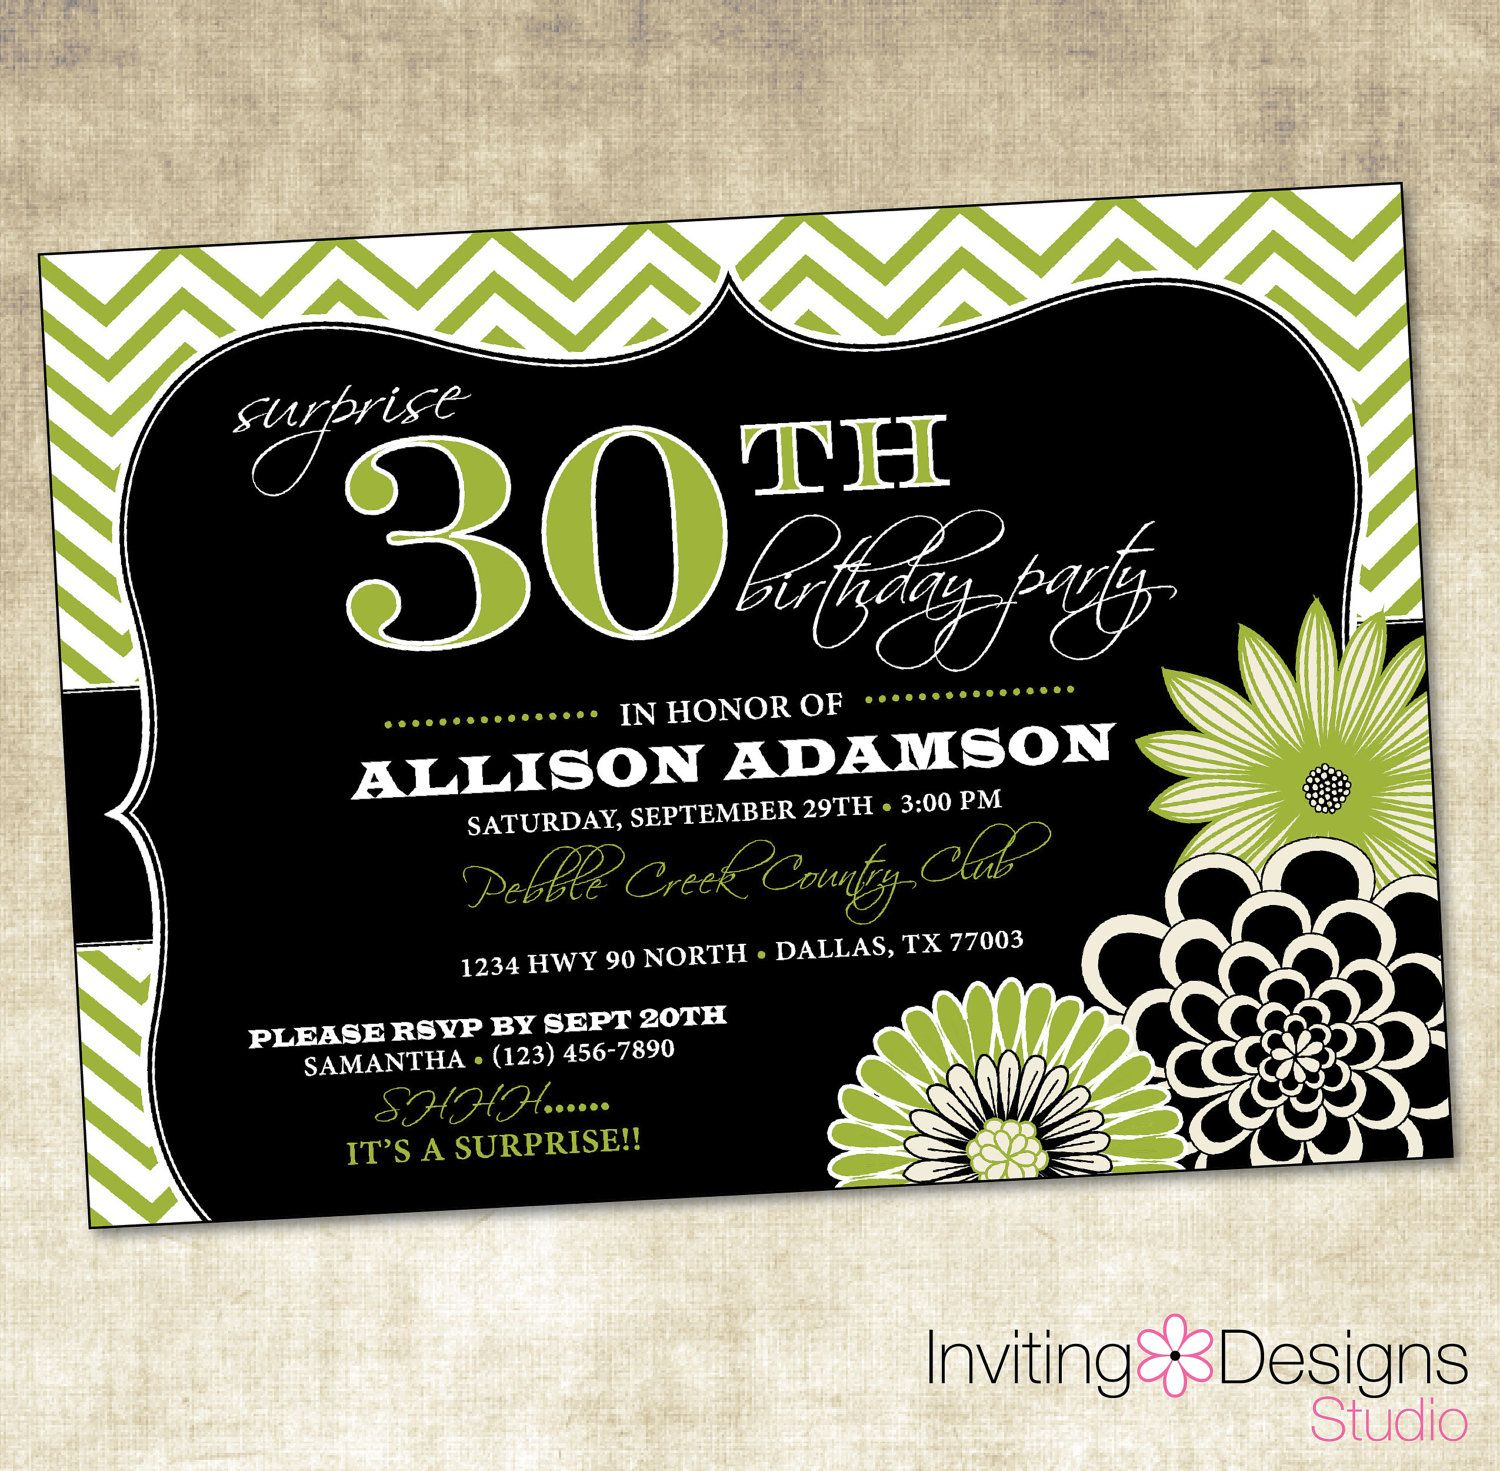 Birthday Party Invitation th th th th th Green